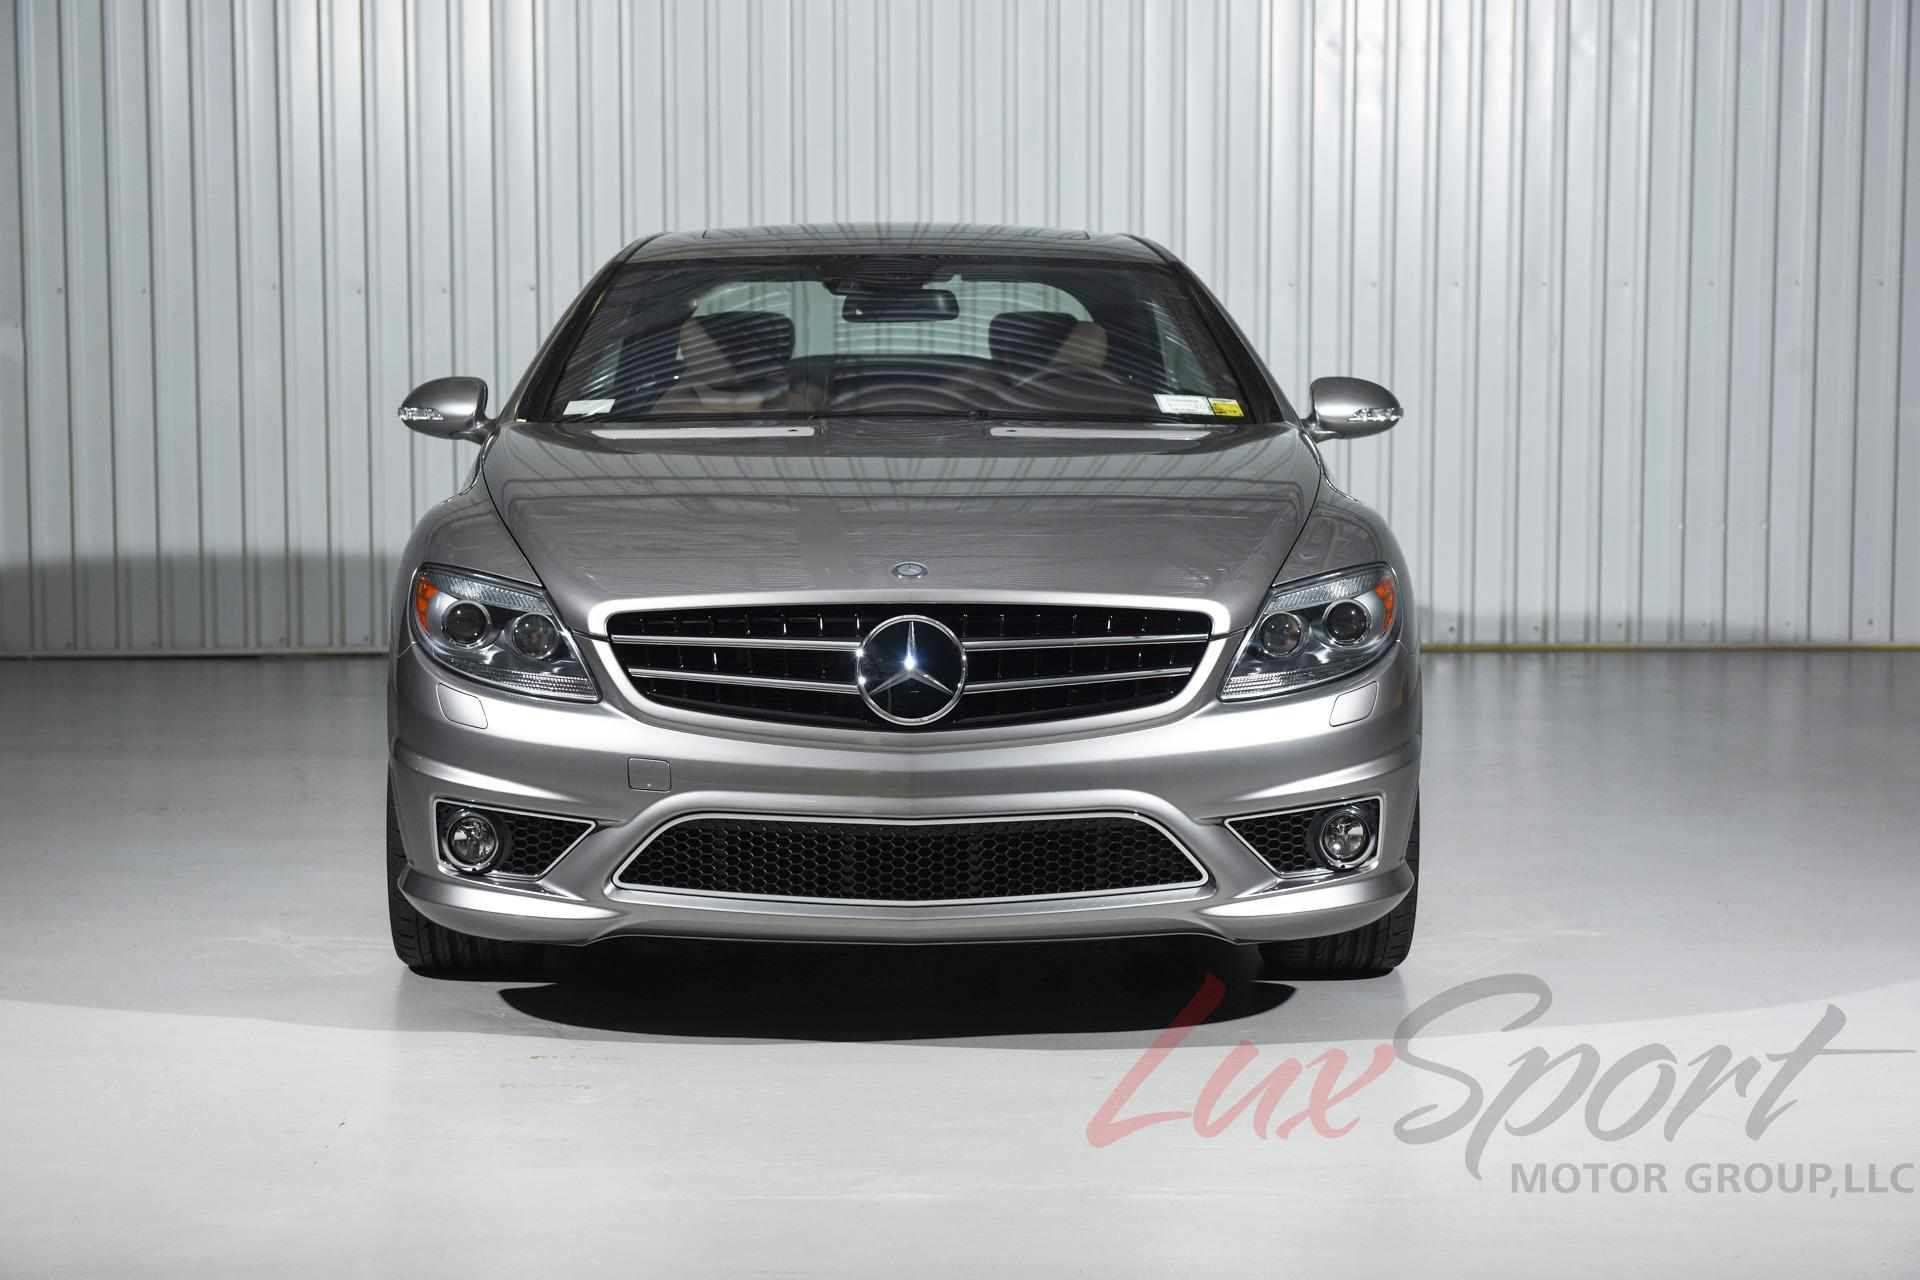 Used 2008 Mercedes-Benz CL 65 AMG 40th Anniv. Edition  | Syosset, NY